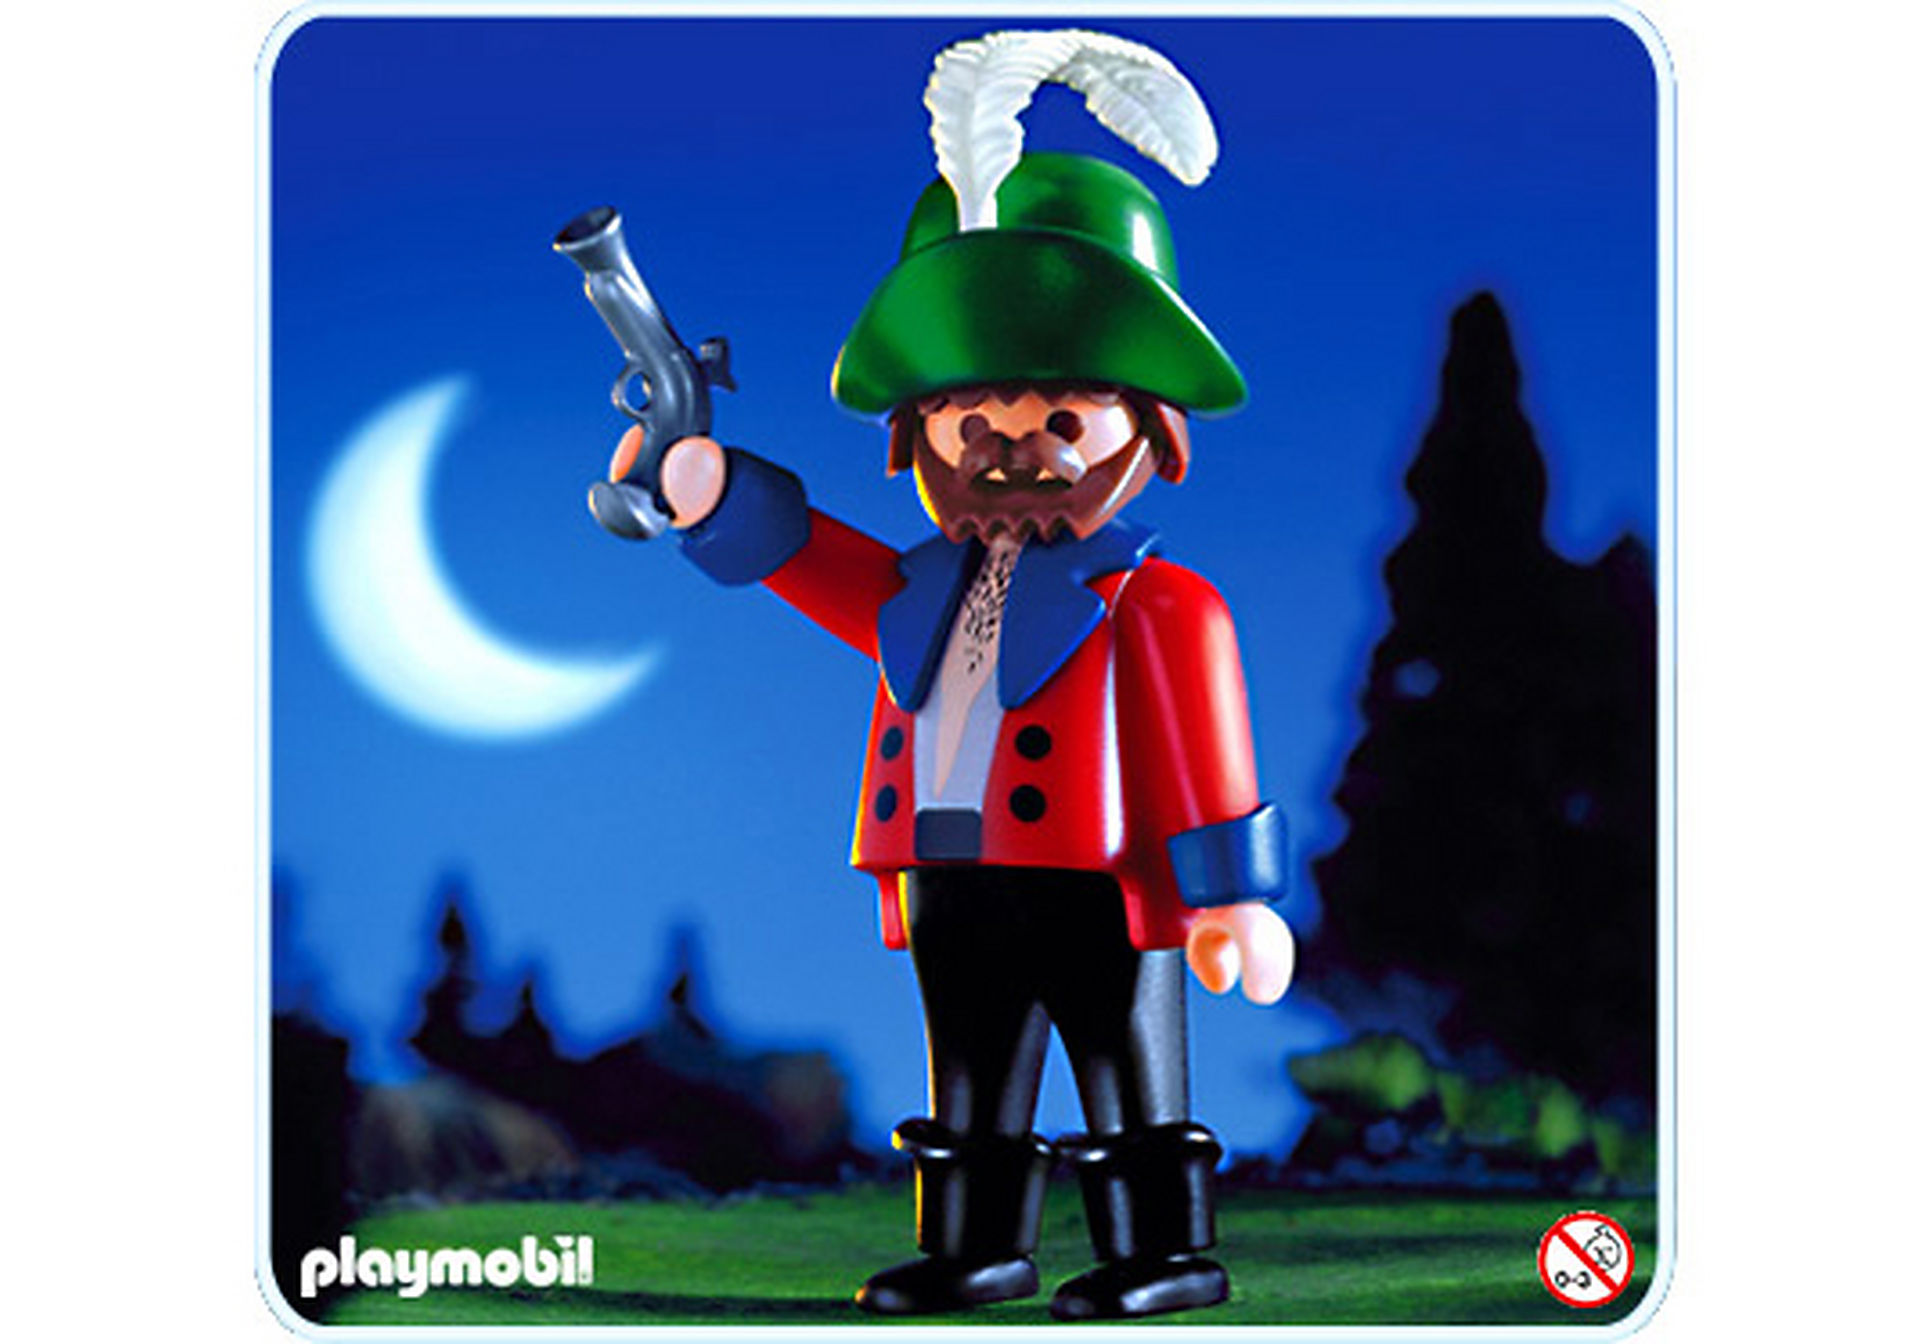 http://media.playmobil.com/i/playmobil/4542-A_product_detail/Bandit